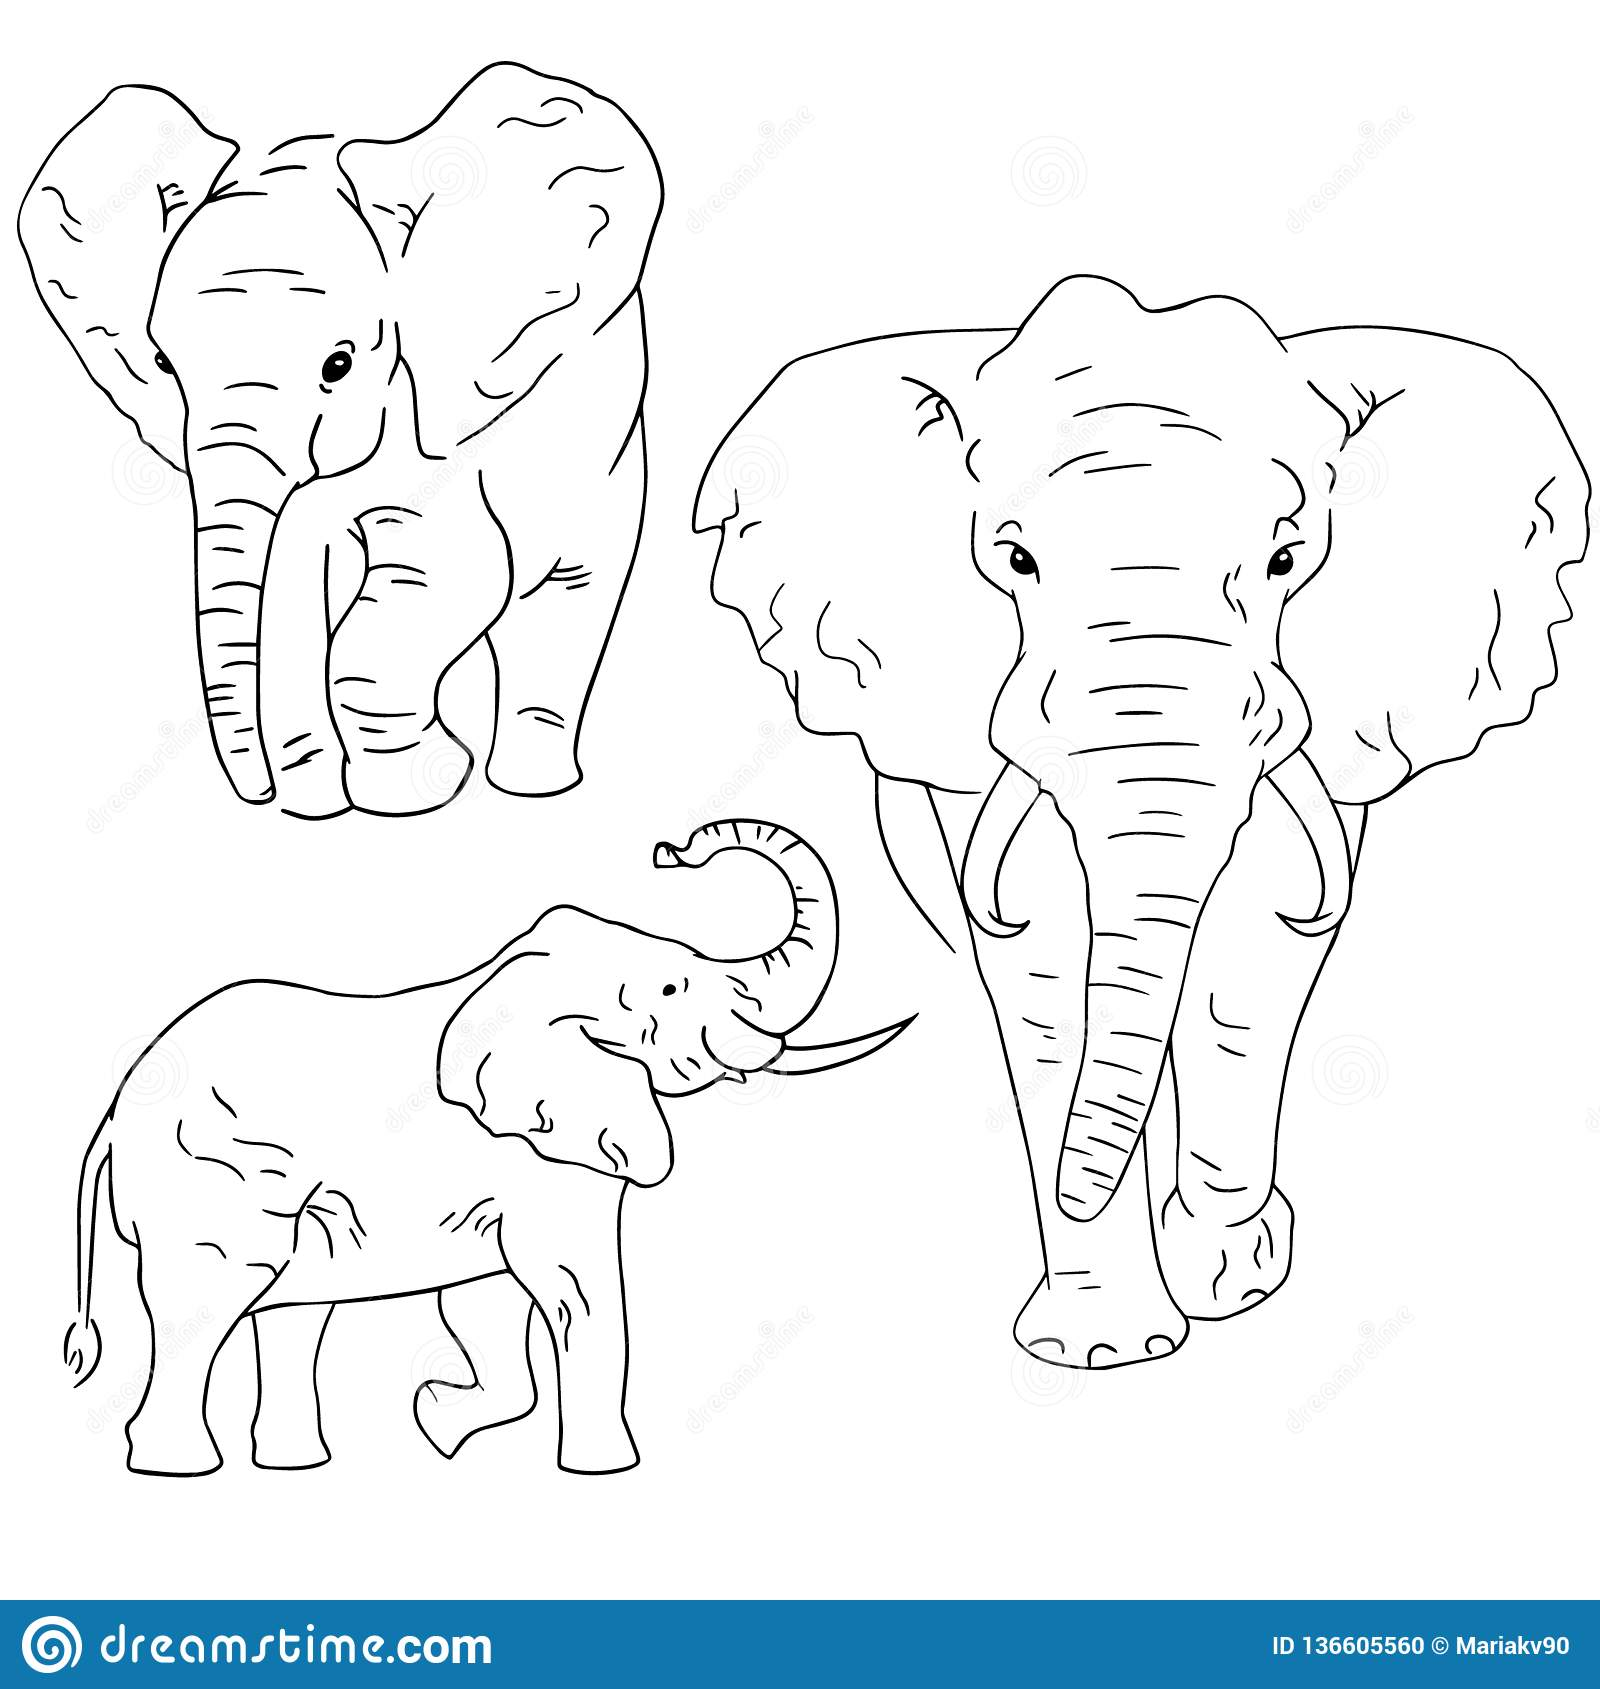 Elephant sketches on white background. Set of sketching animals drawn by freehand